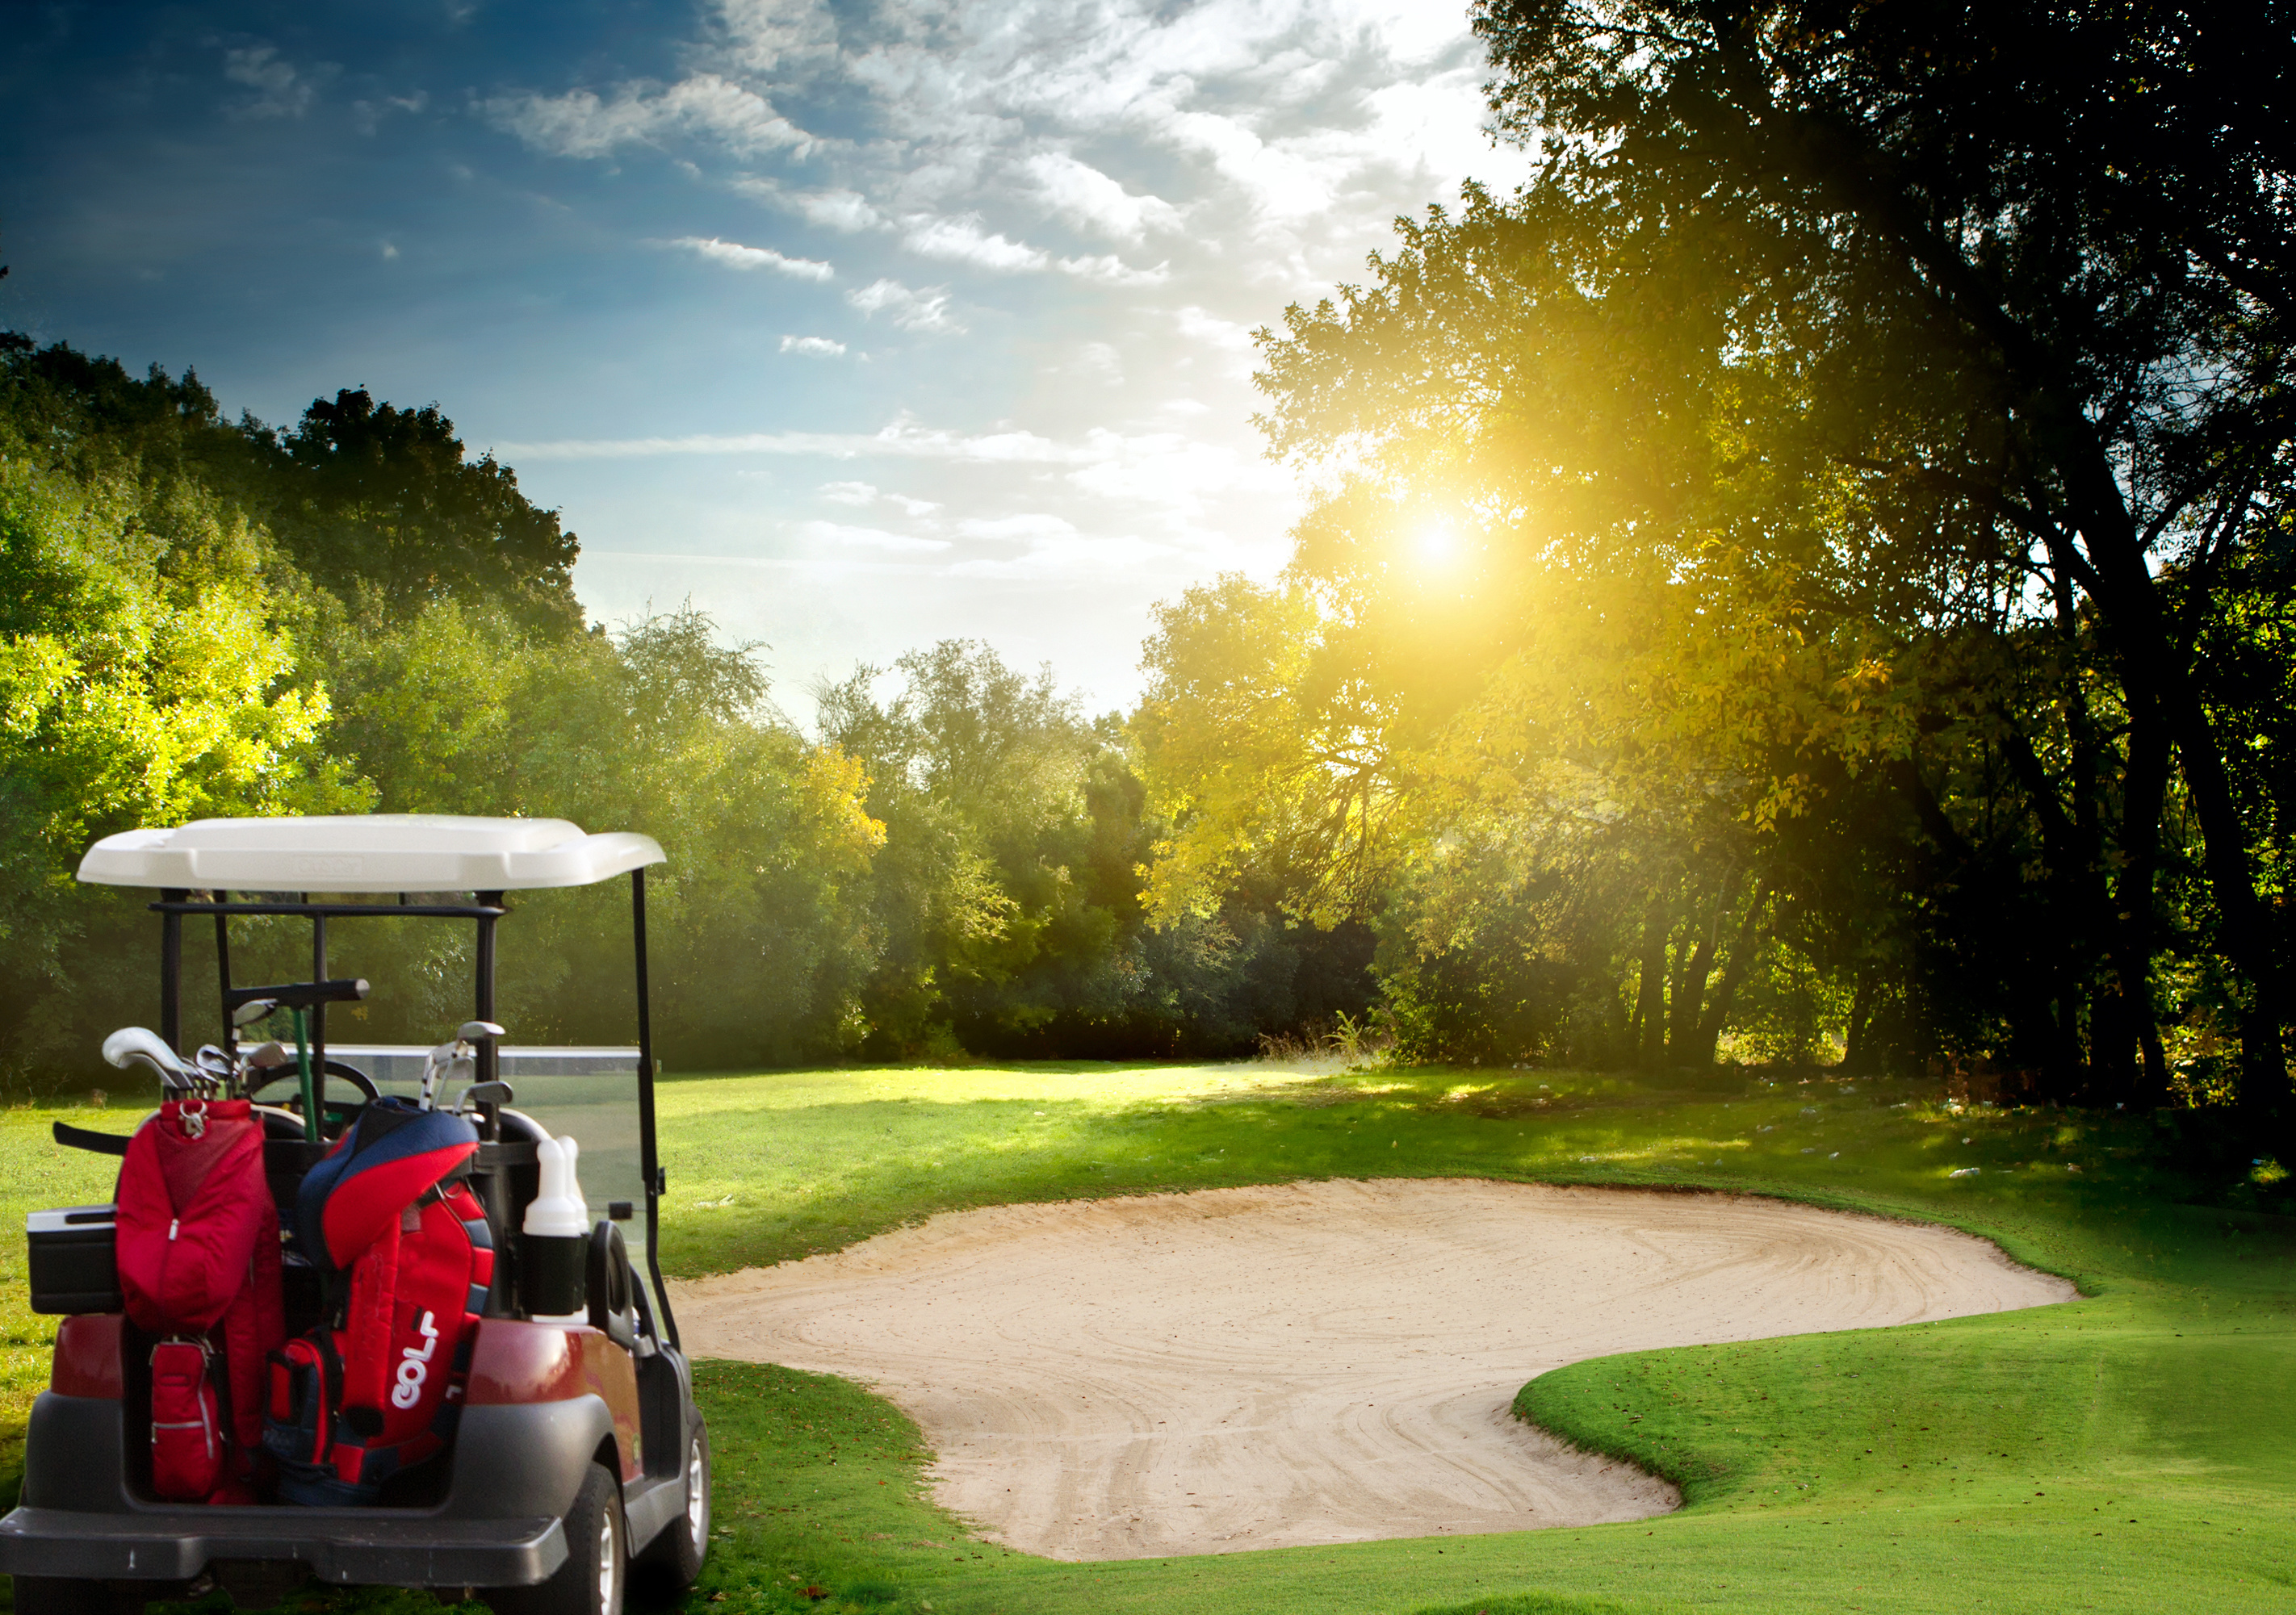 These golf carts will make golf enthusiasts drool!